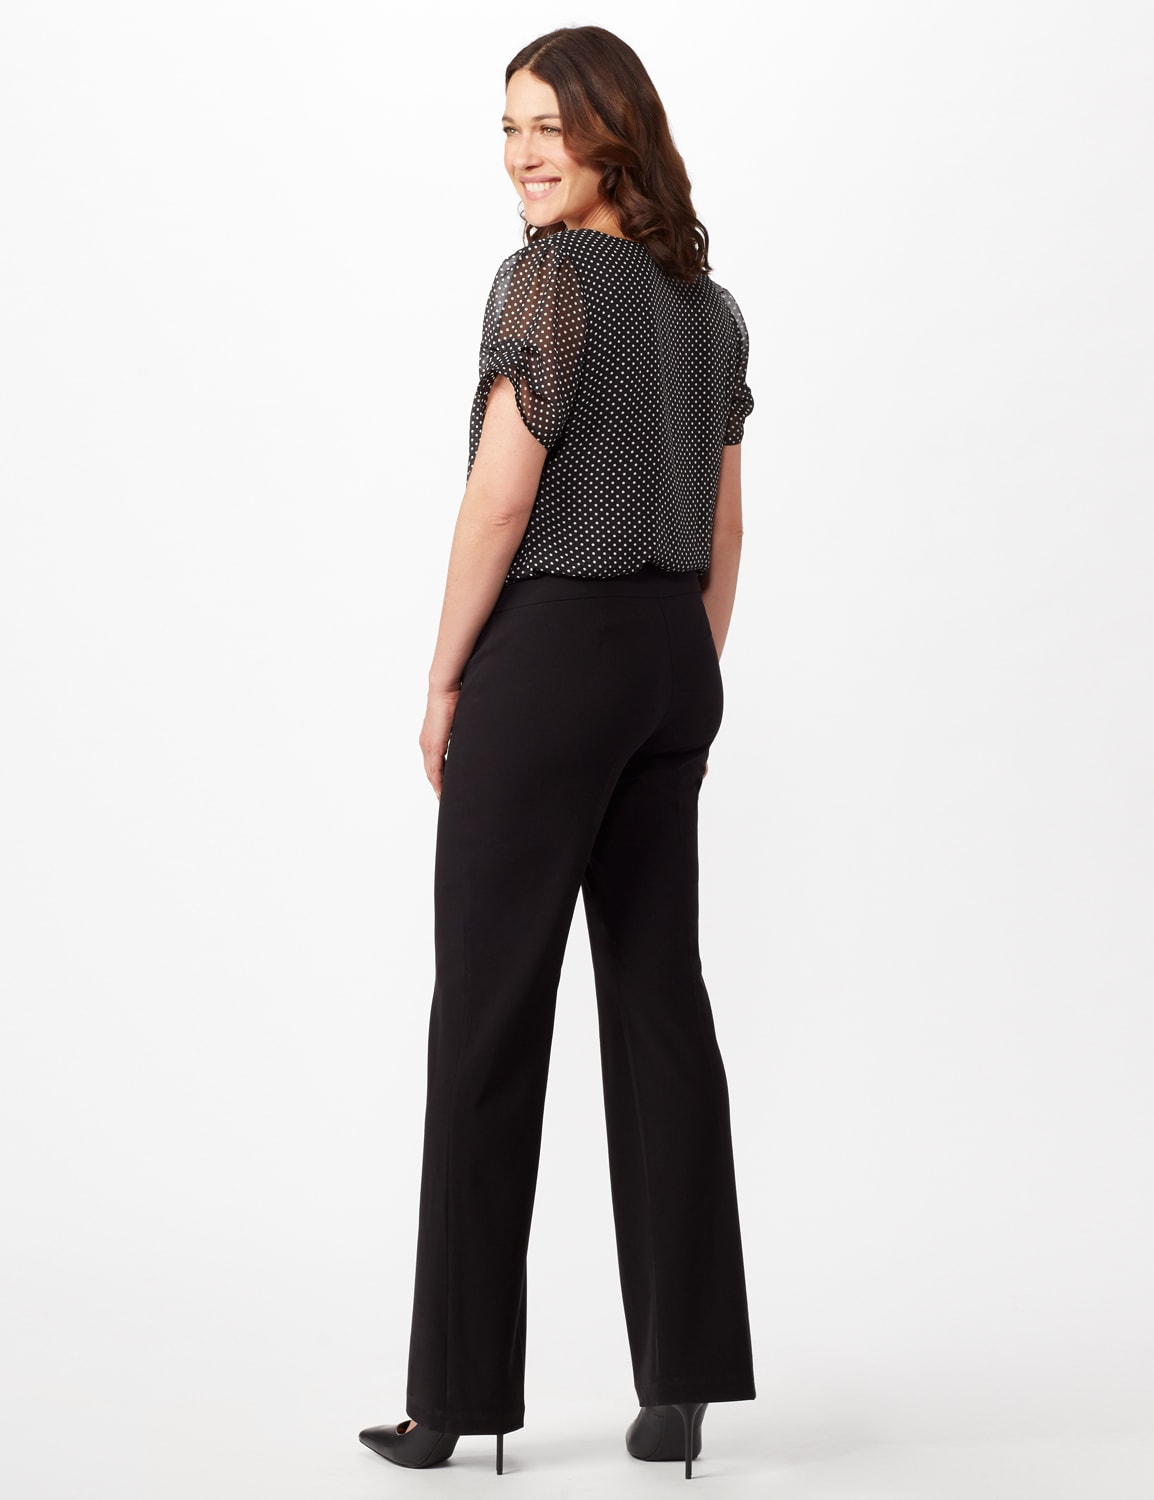 Roz & Ali Secret Agent Pull On Tummy Control Pants - Tall Length - Misses - Black - Back